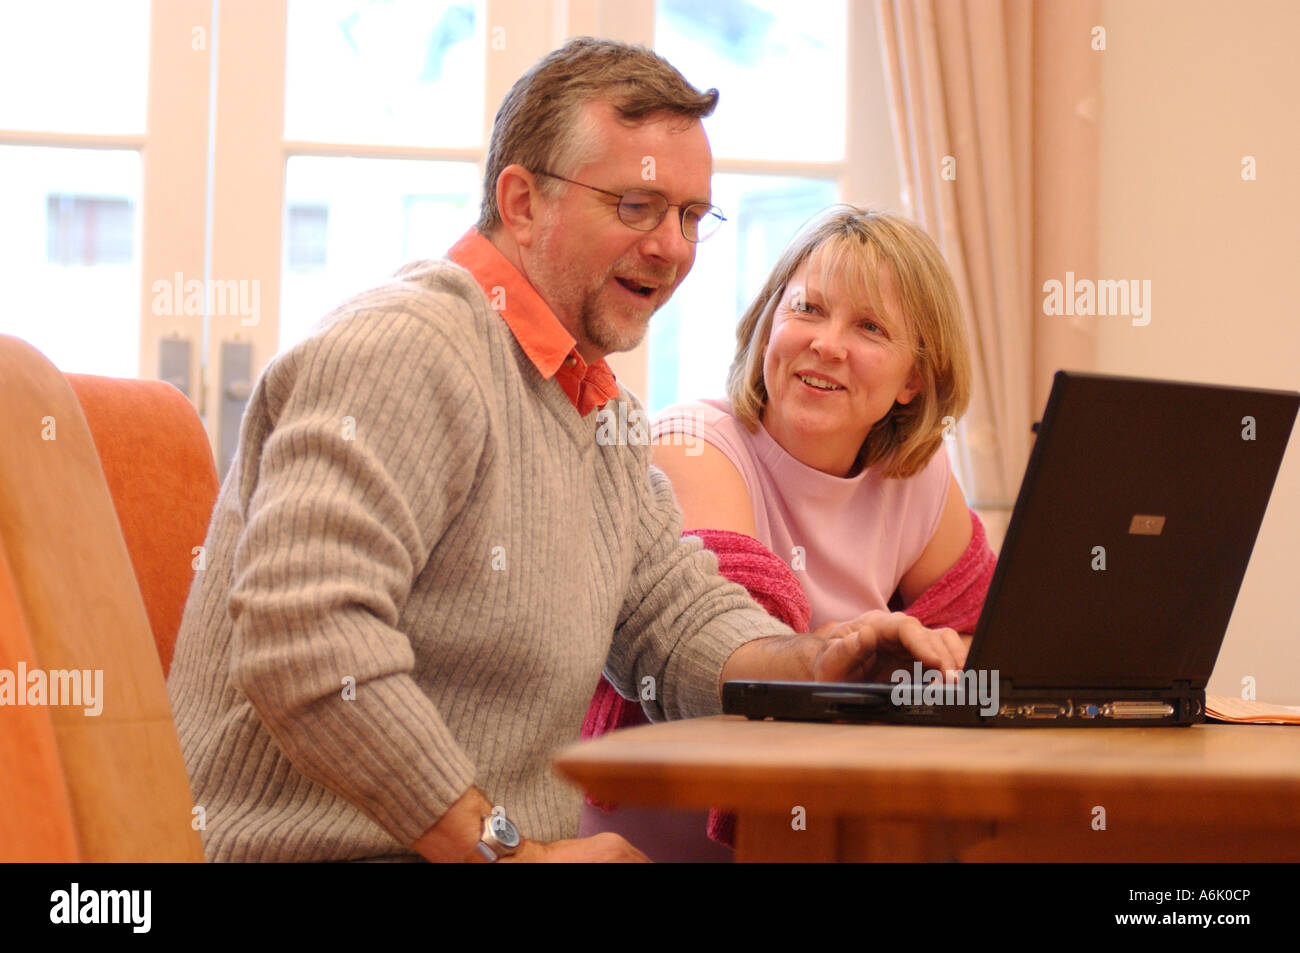 British business man and woman casual clothes working in office London UK - Stock Image